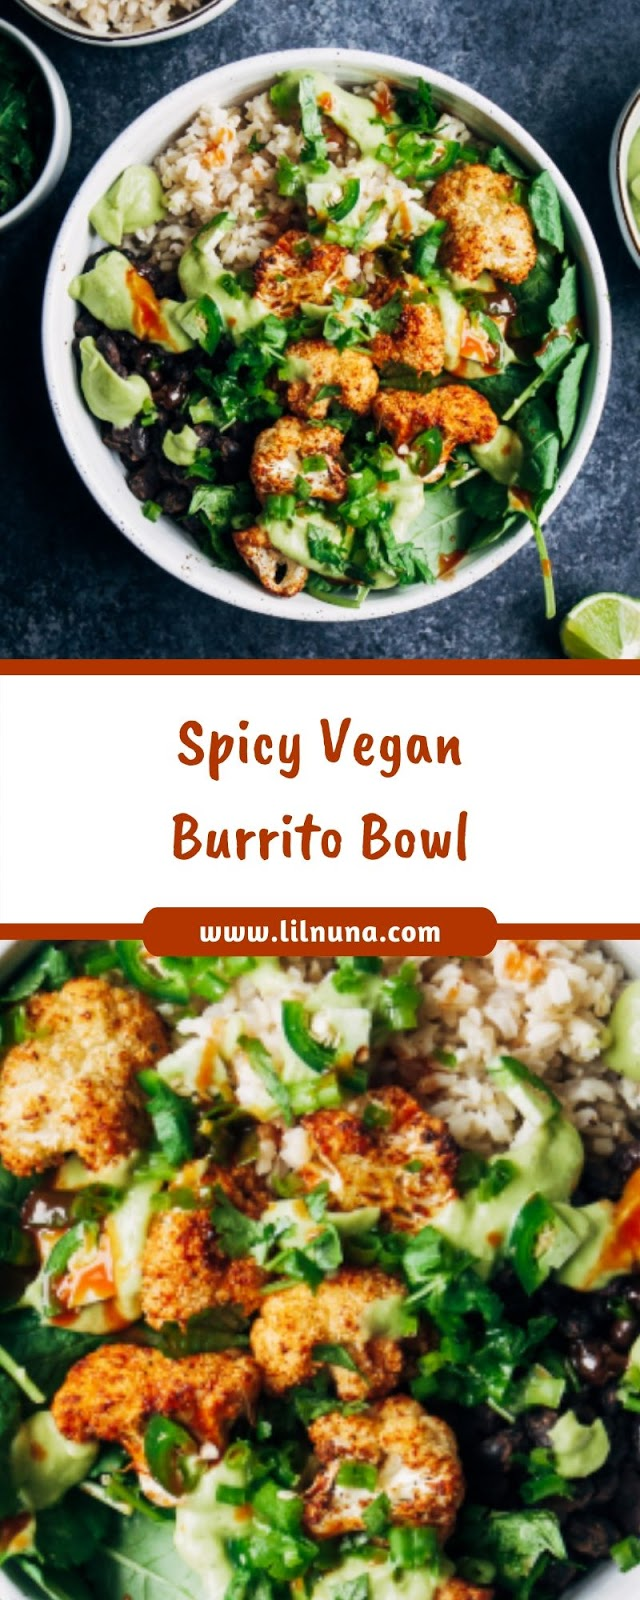 Spicy Vegan Burrito Bowl